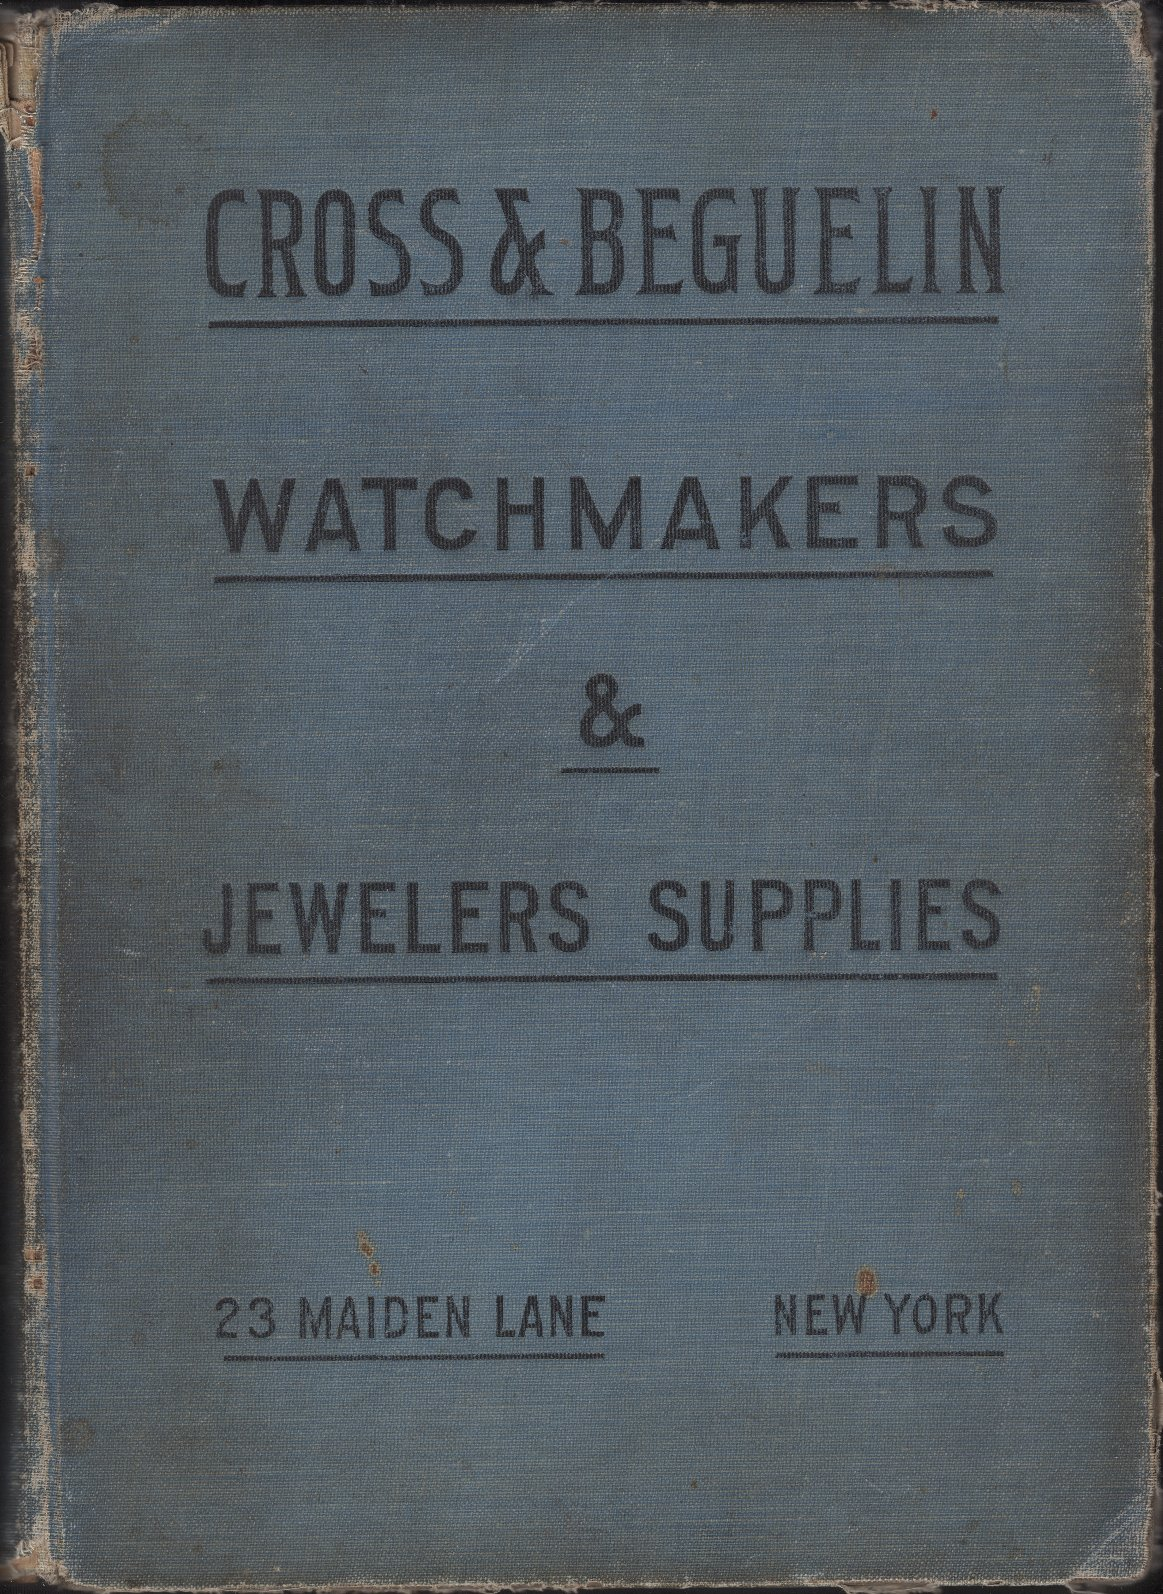 1910 Cross & Beguelin: Aurora Parts Material Catalog Cover Image